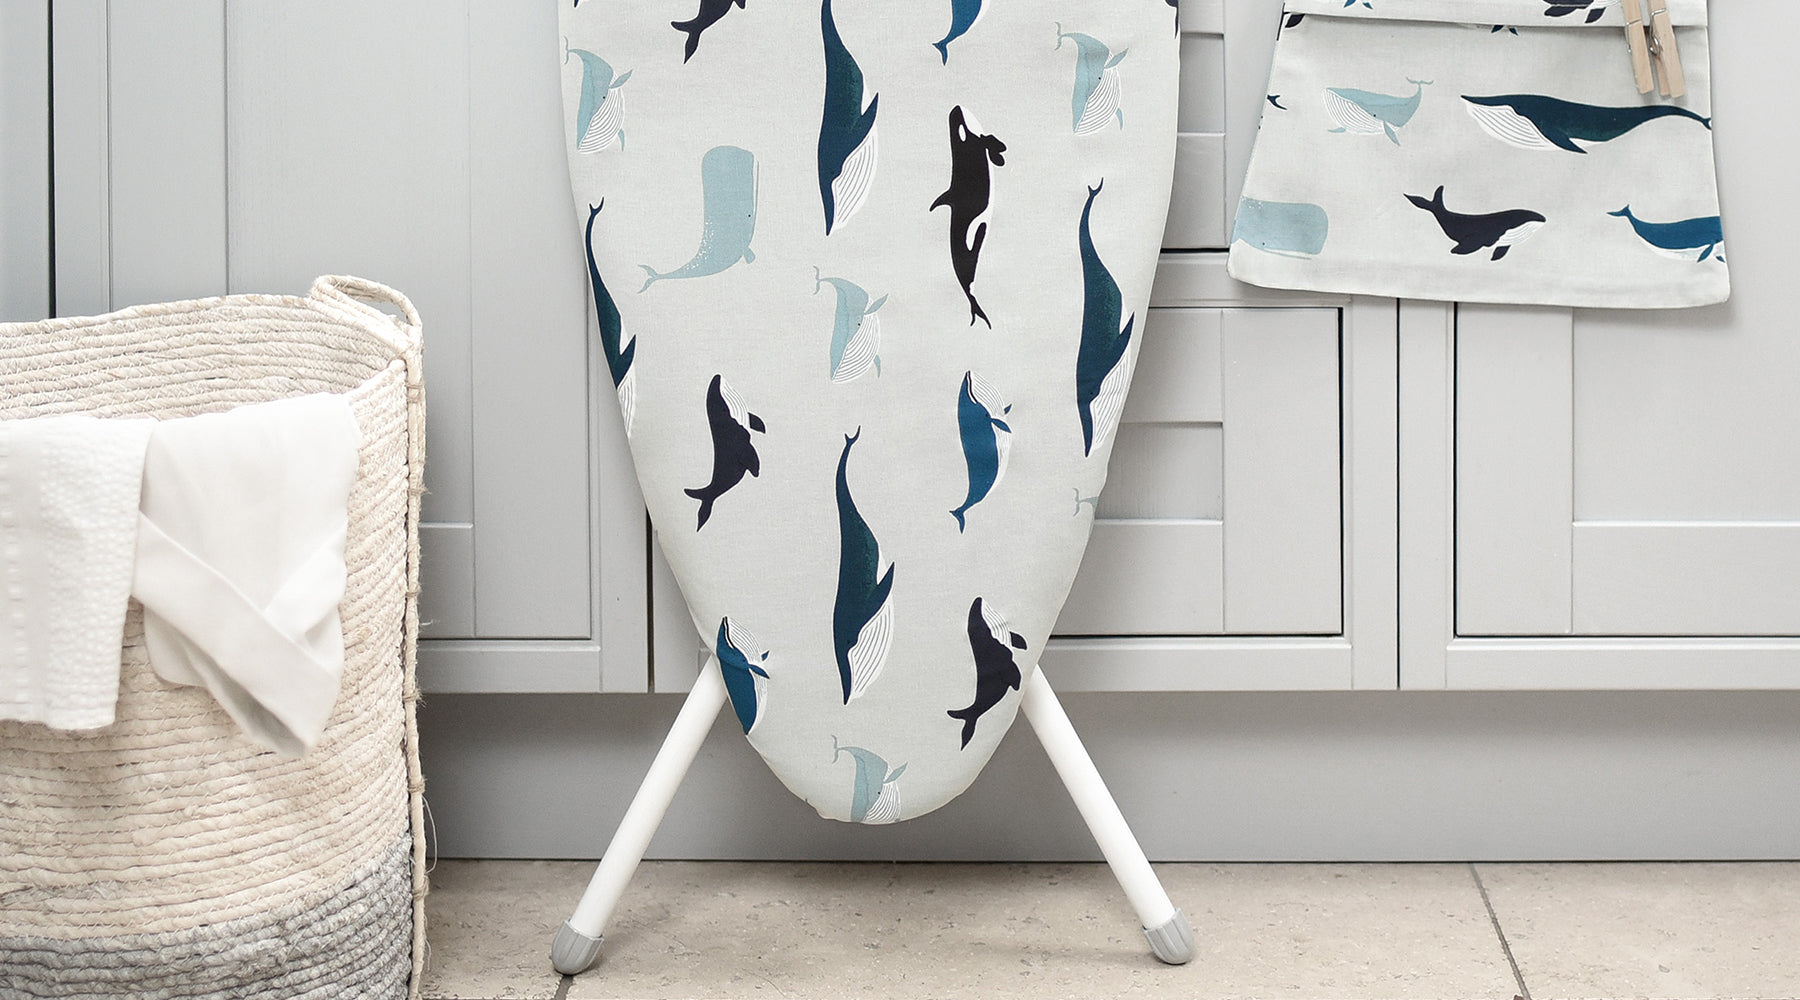 Ironing Board Cover by Sophie Allport